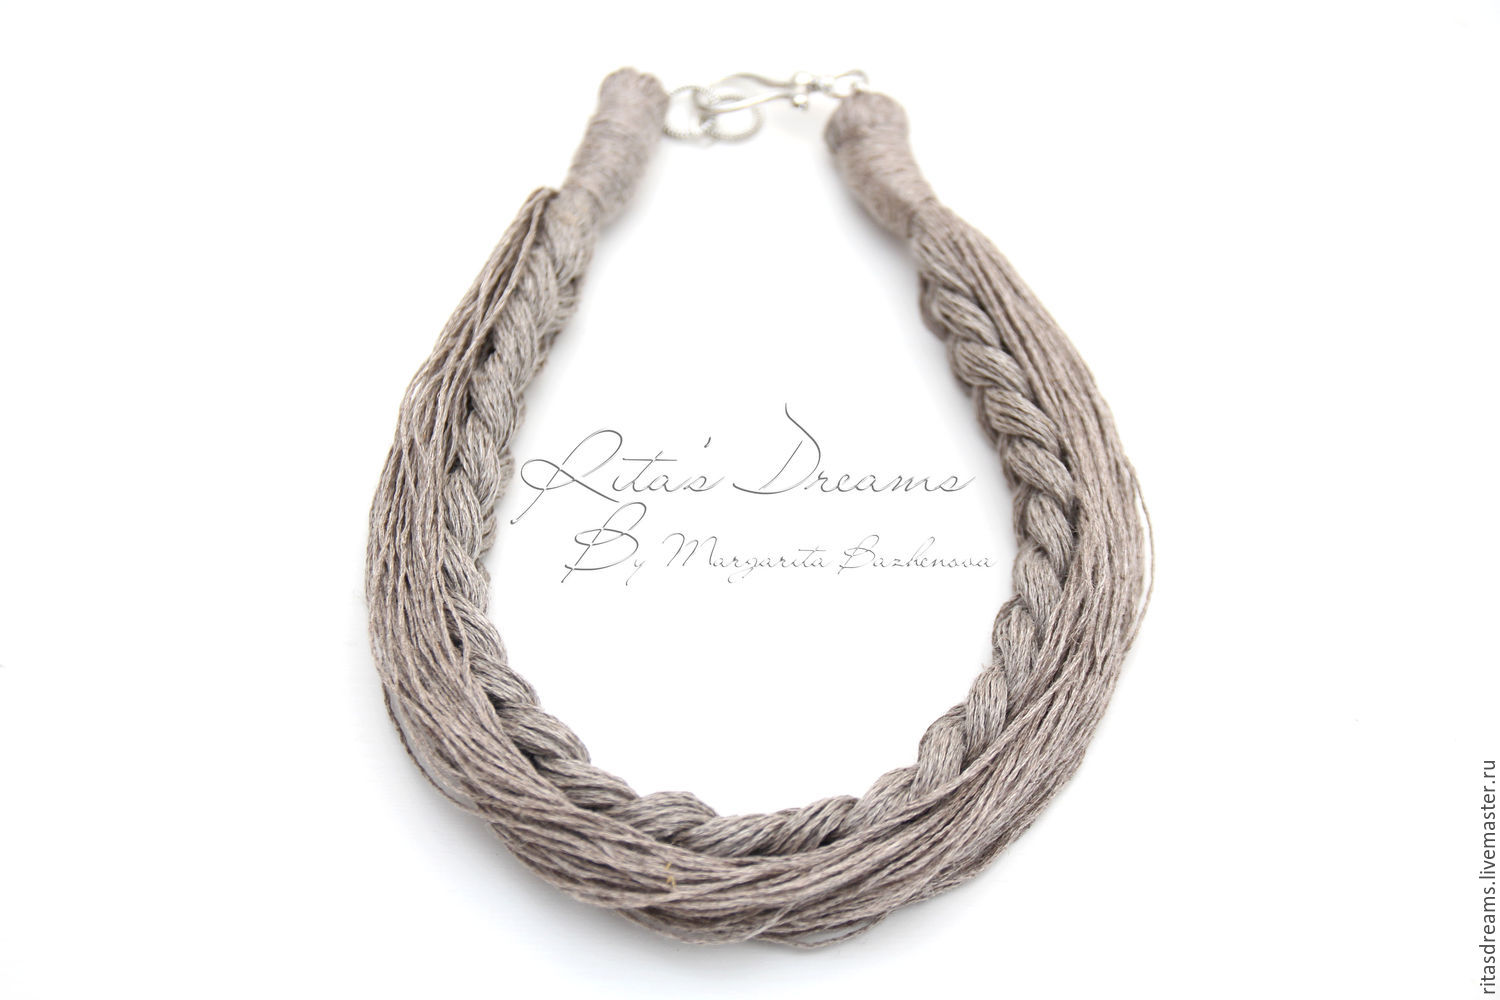 Necklace of natural undyed linen in natural gray color - concise-have accessory for lovers of natural style.